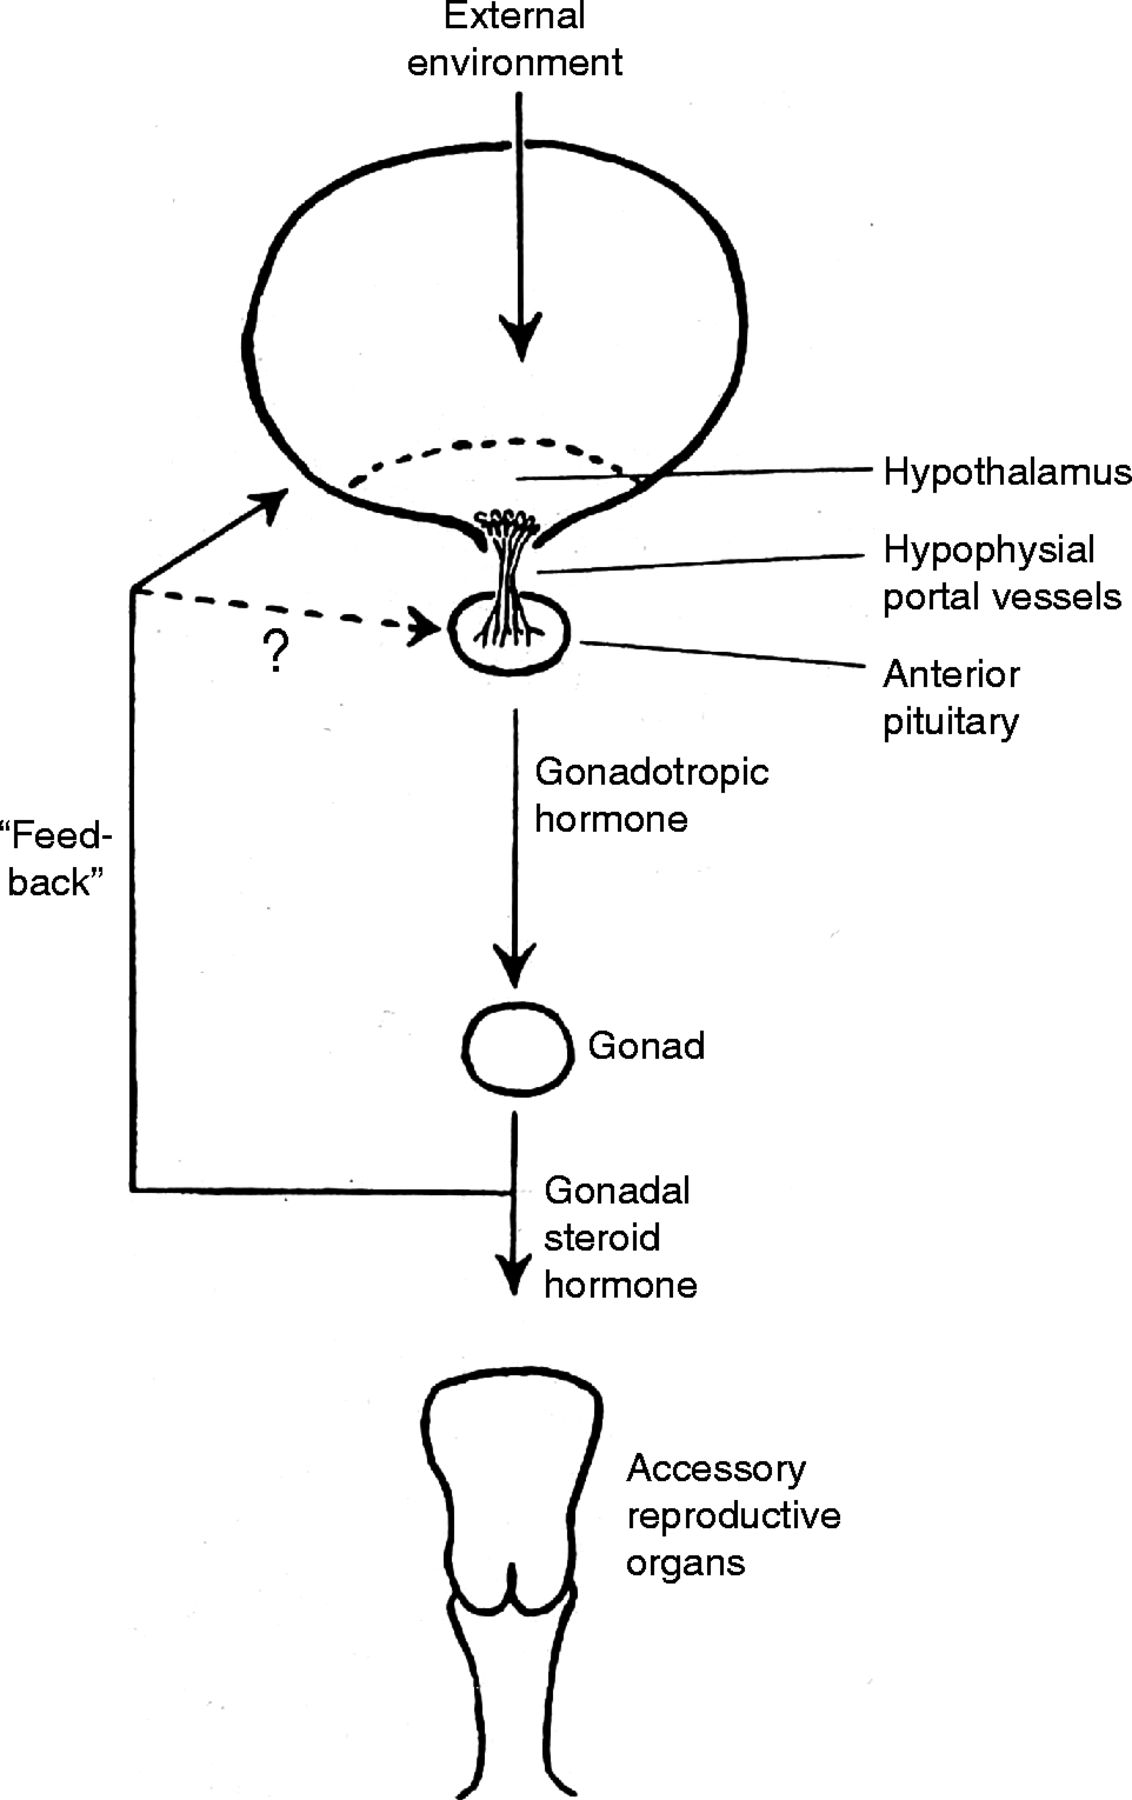 60 YEARS OF NEUROENDOCRINOLOGY: The hypothalamo-pituitary